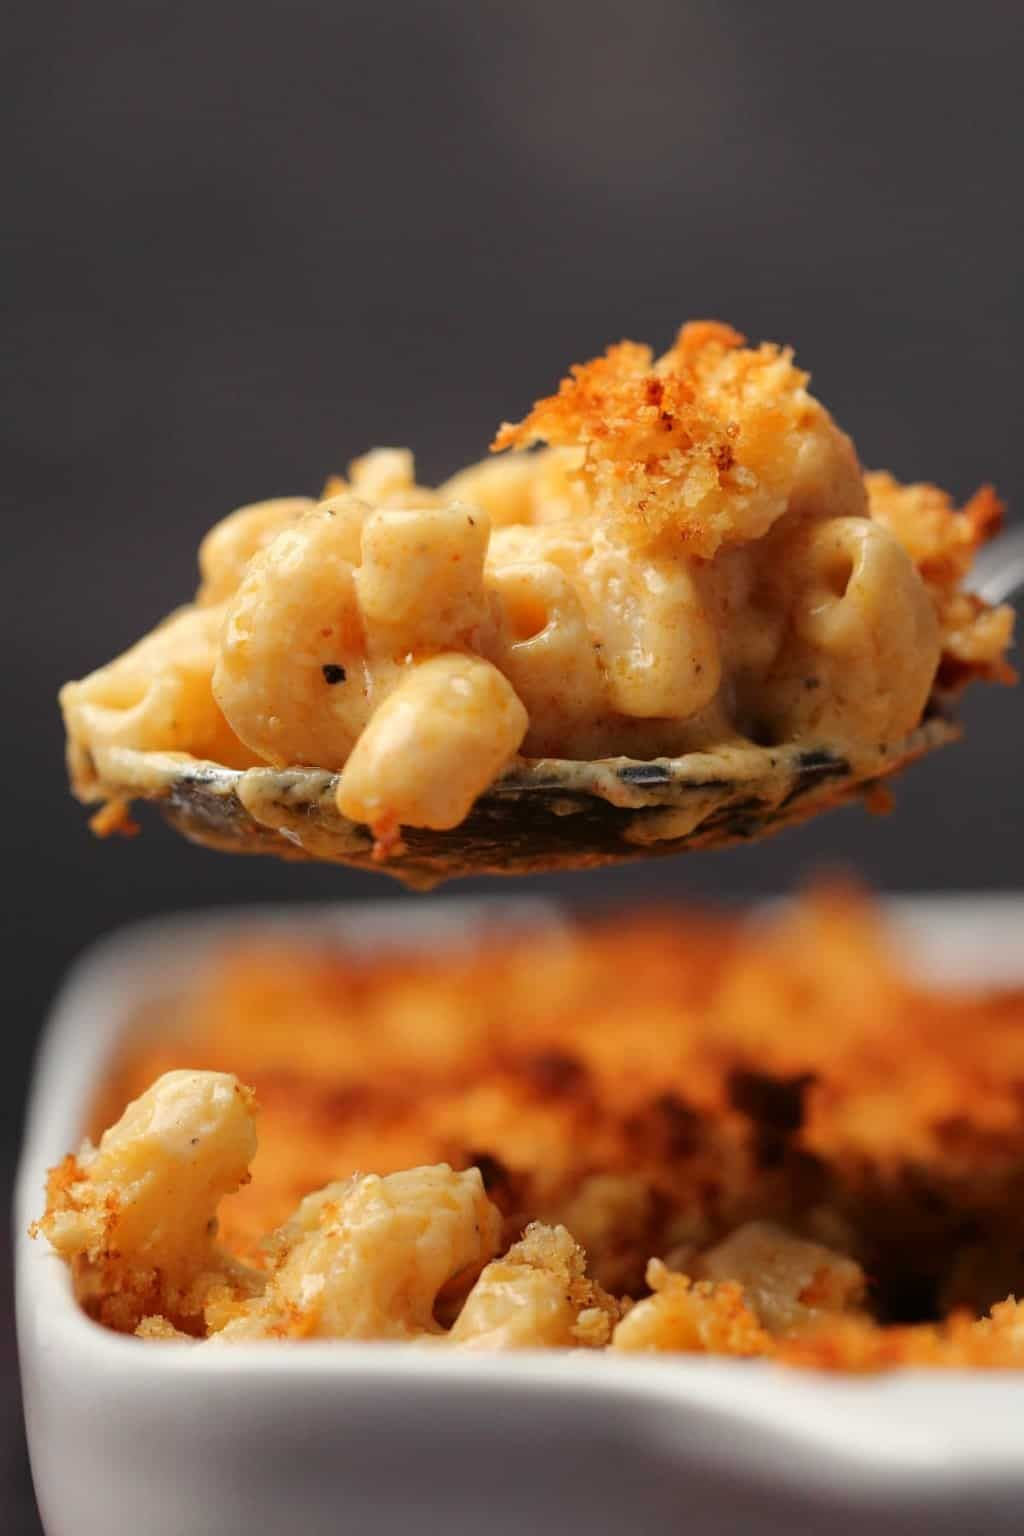 This Classic Vegan Mac And Cheese Is Ultra Cheesy Saucy And Creamy Topped With Breadcrumbs And Vegan Mac And Cheese Vegan Pasta Dish Vegetarian Vegan Recipes